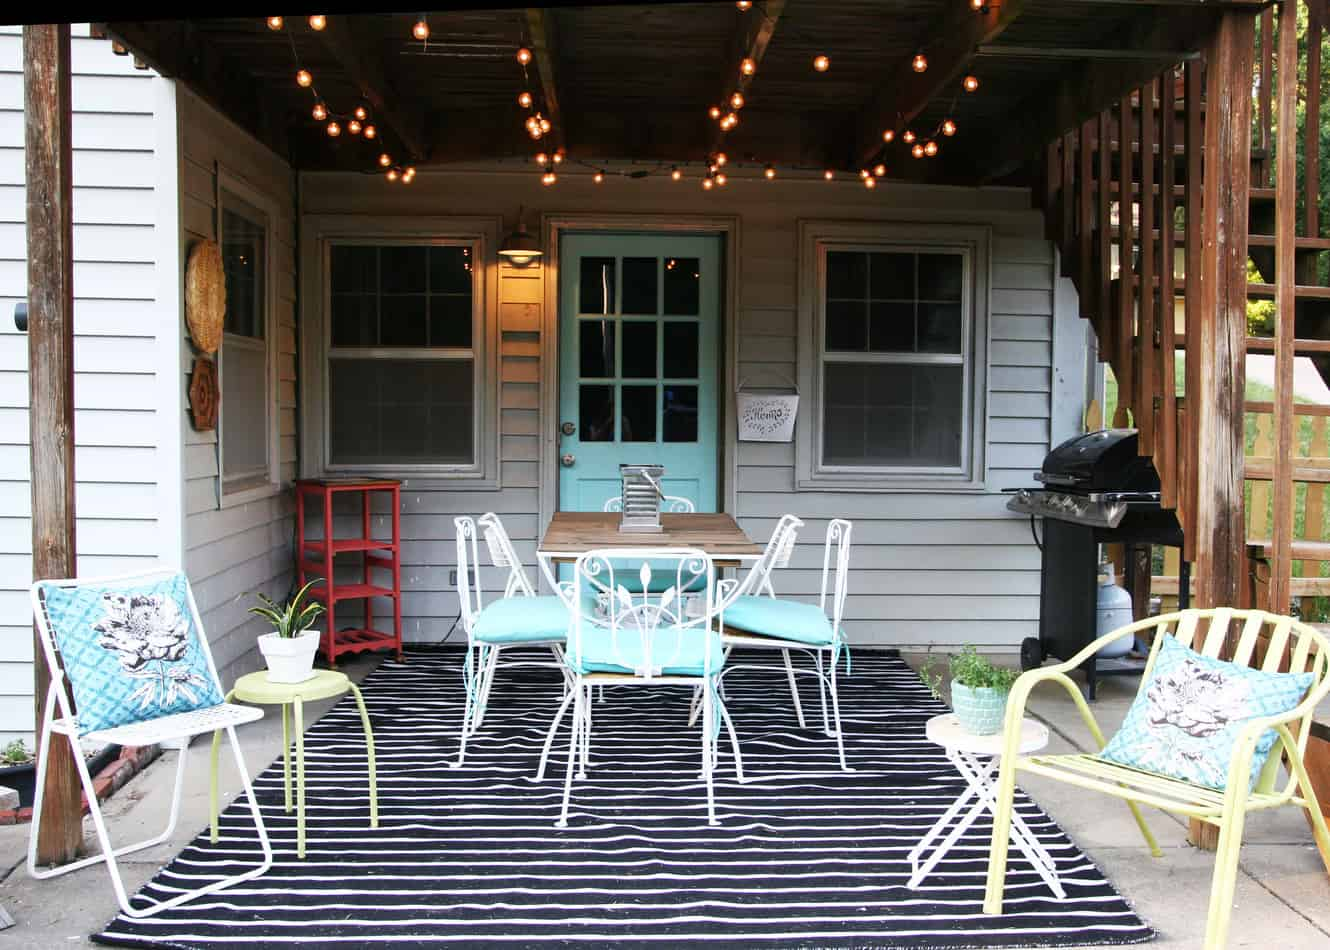 Patio Makeover On A Budget. Lots Of DIY Projects!